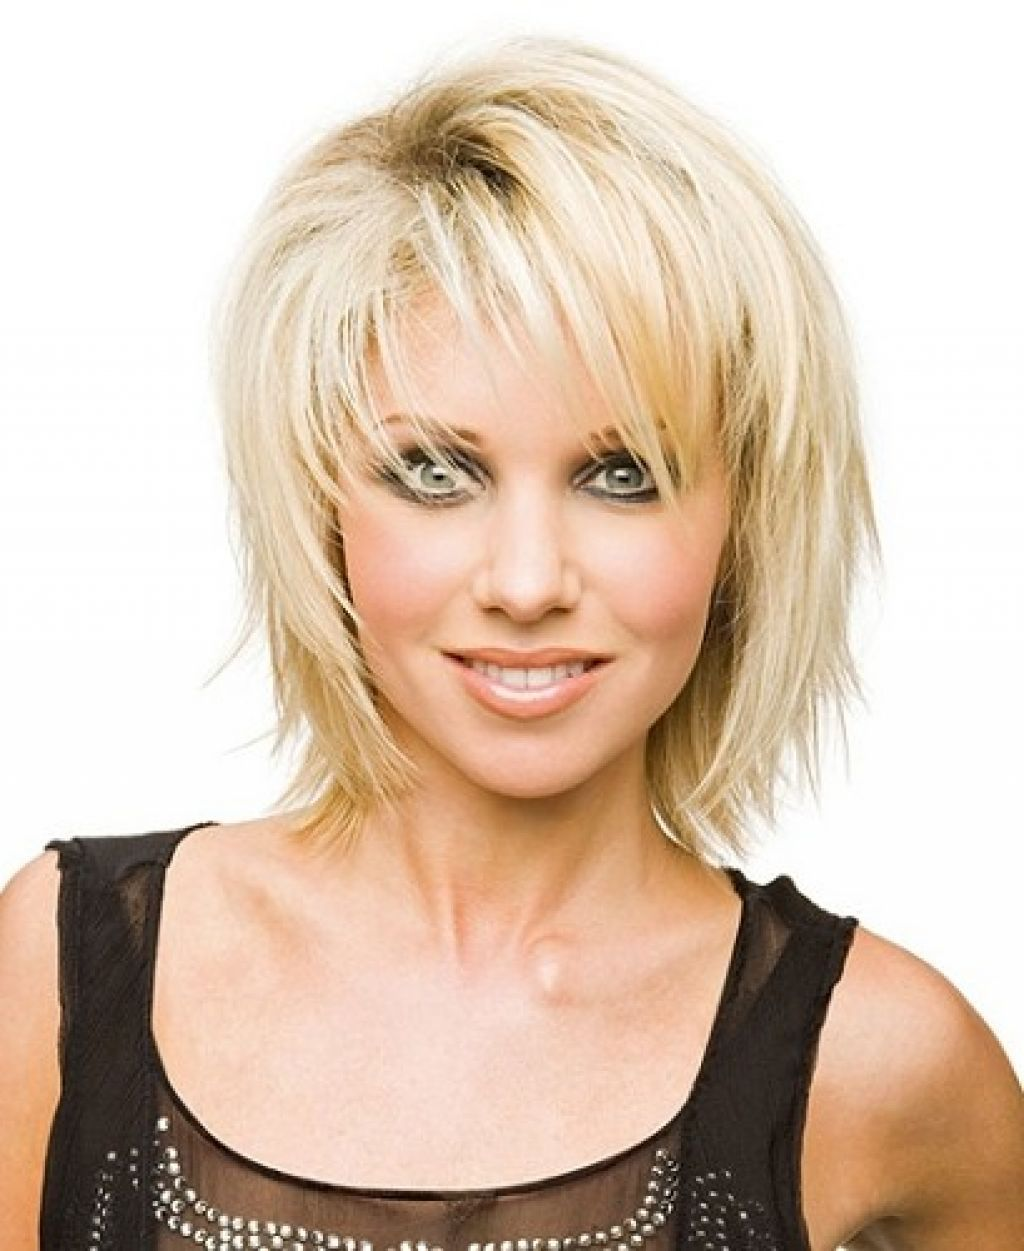 Hairstyle Short Haircuts for Women Over 40 - 2015